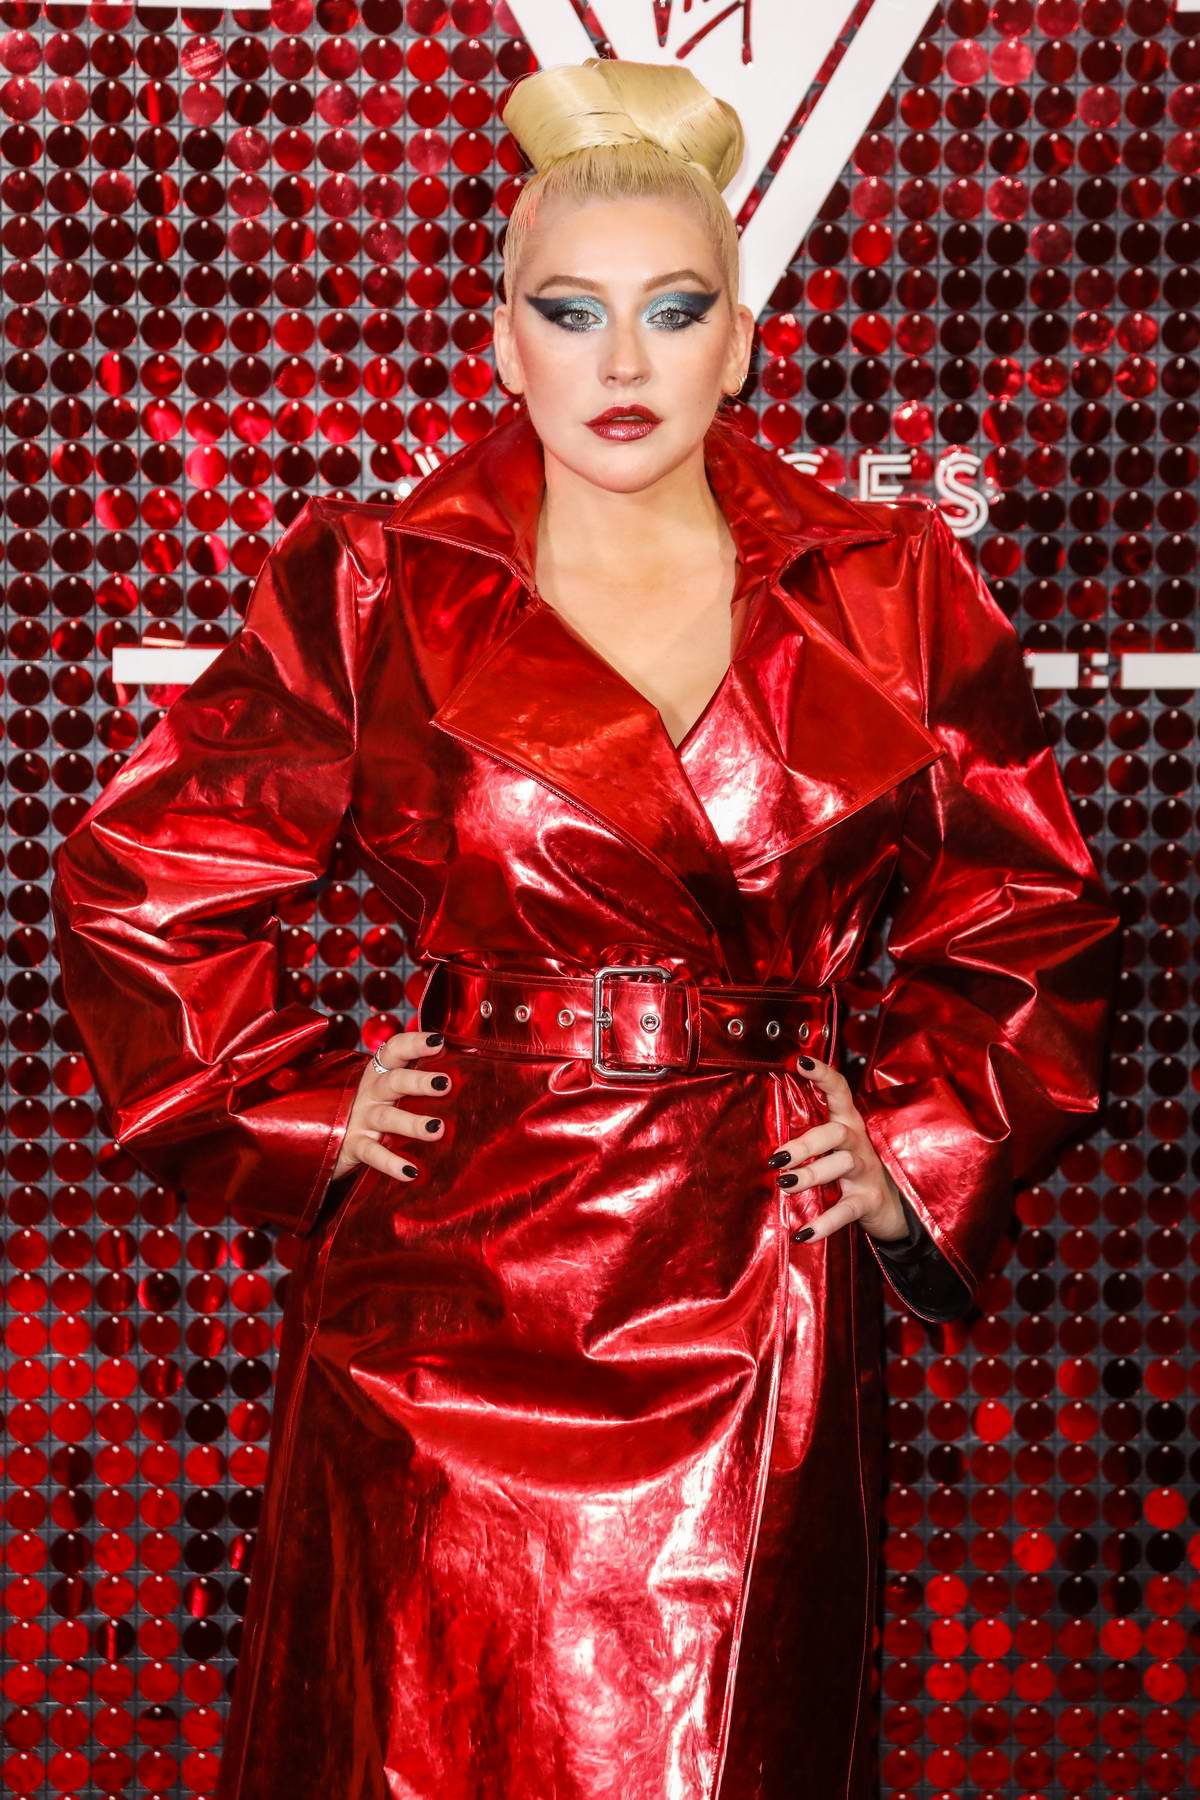 Christina Aguilera attends the Virgin Voyages x Gareth Pugh Event at the Royal Opera House in London, UK